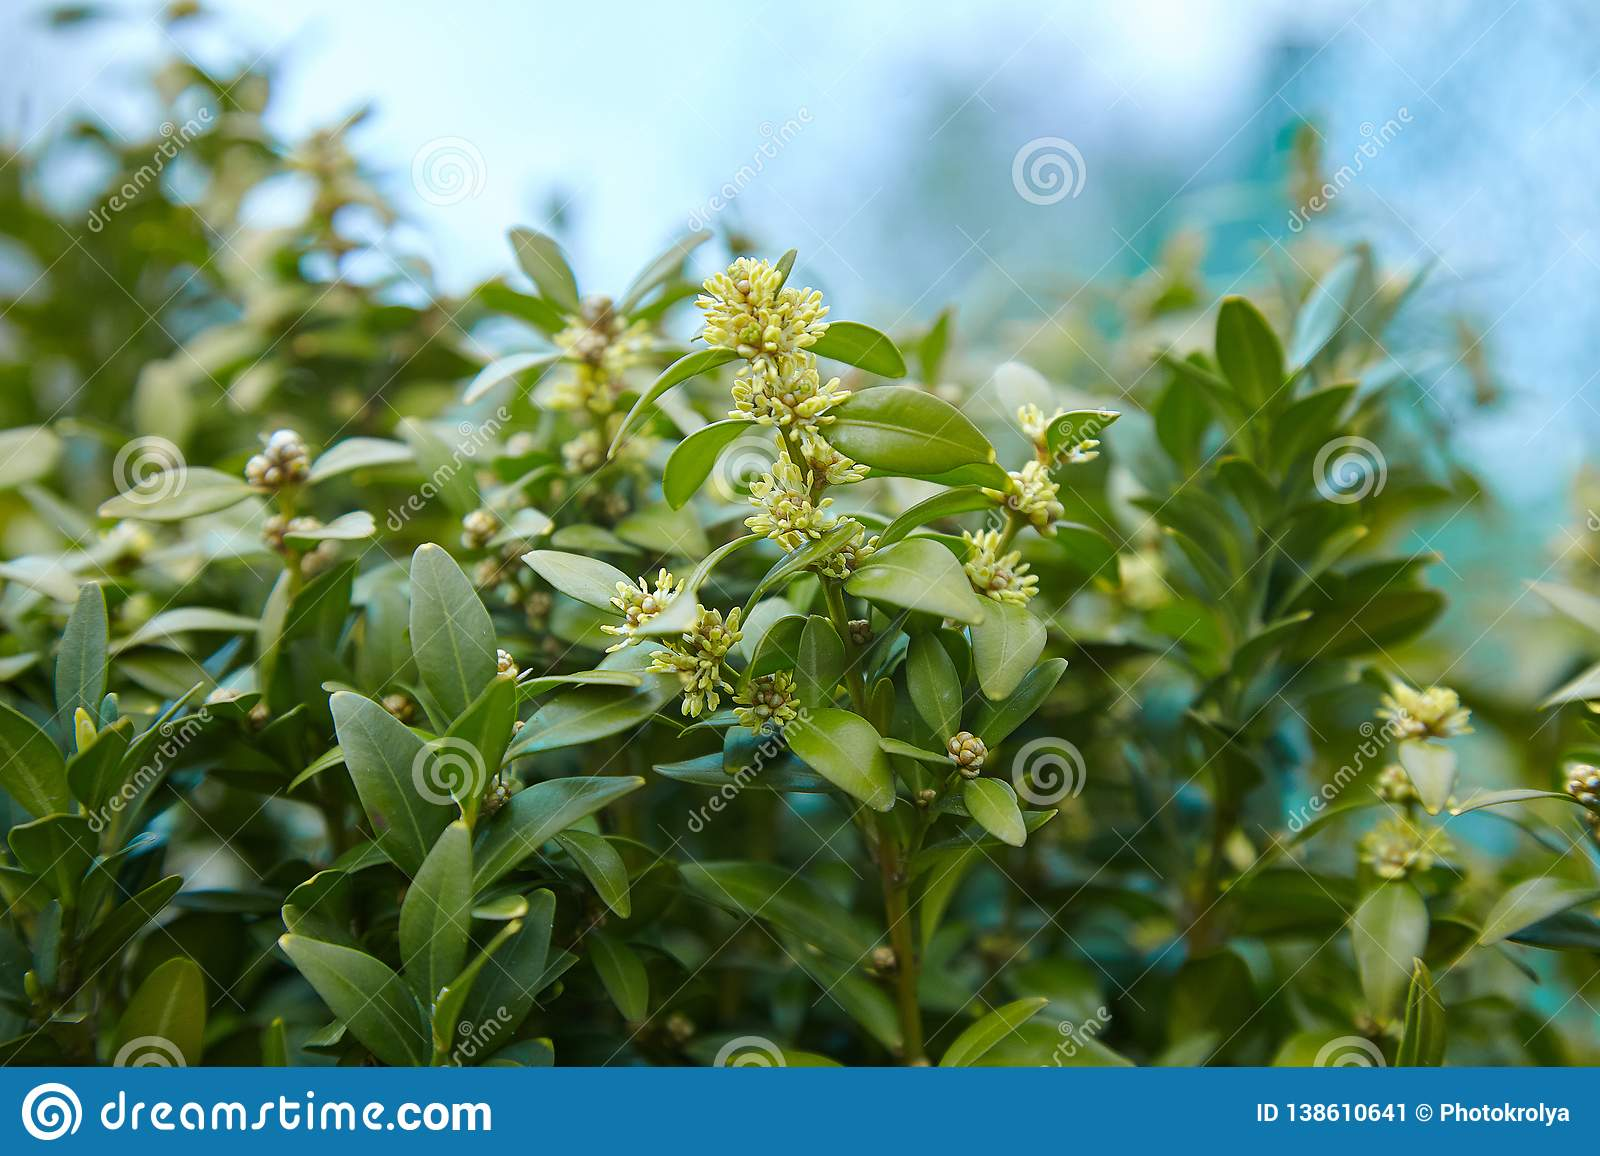 Daphne laureola shrub , commonly called spurge-laurel